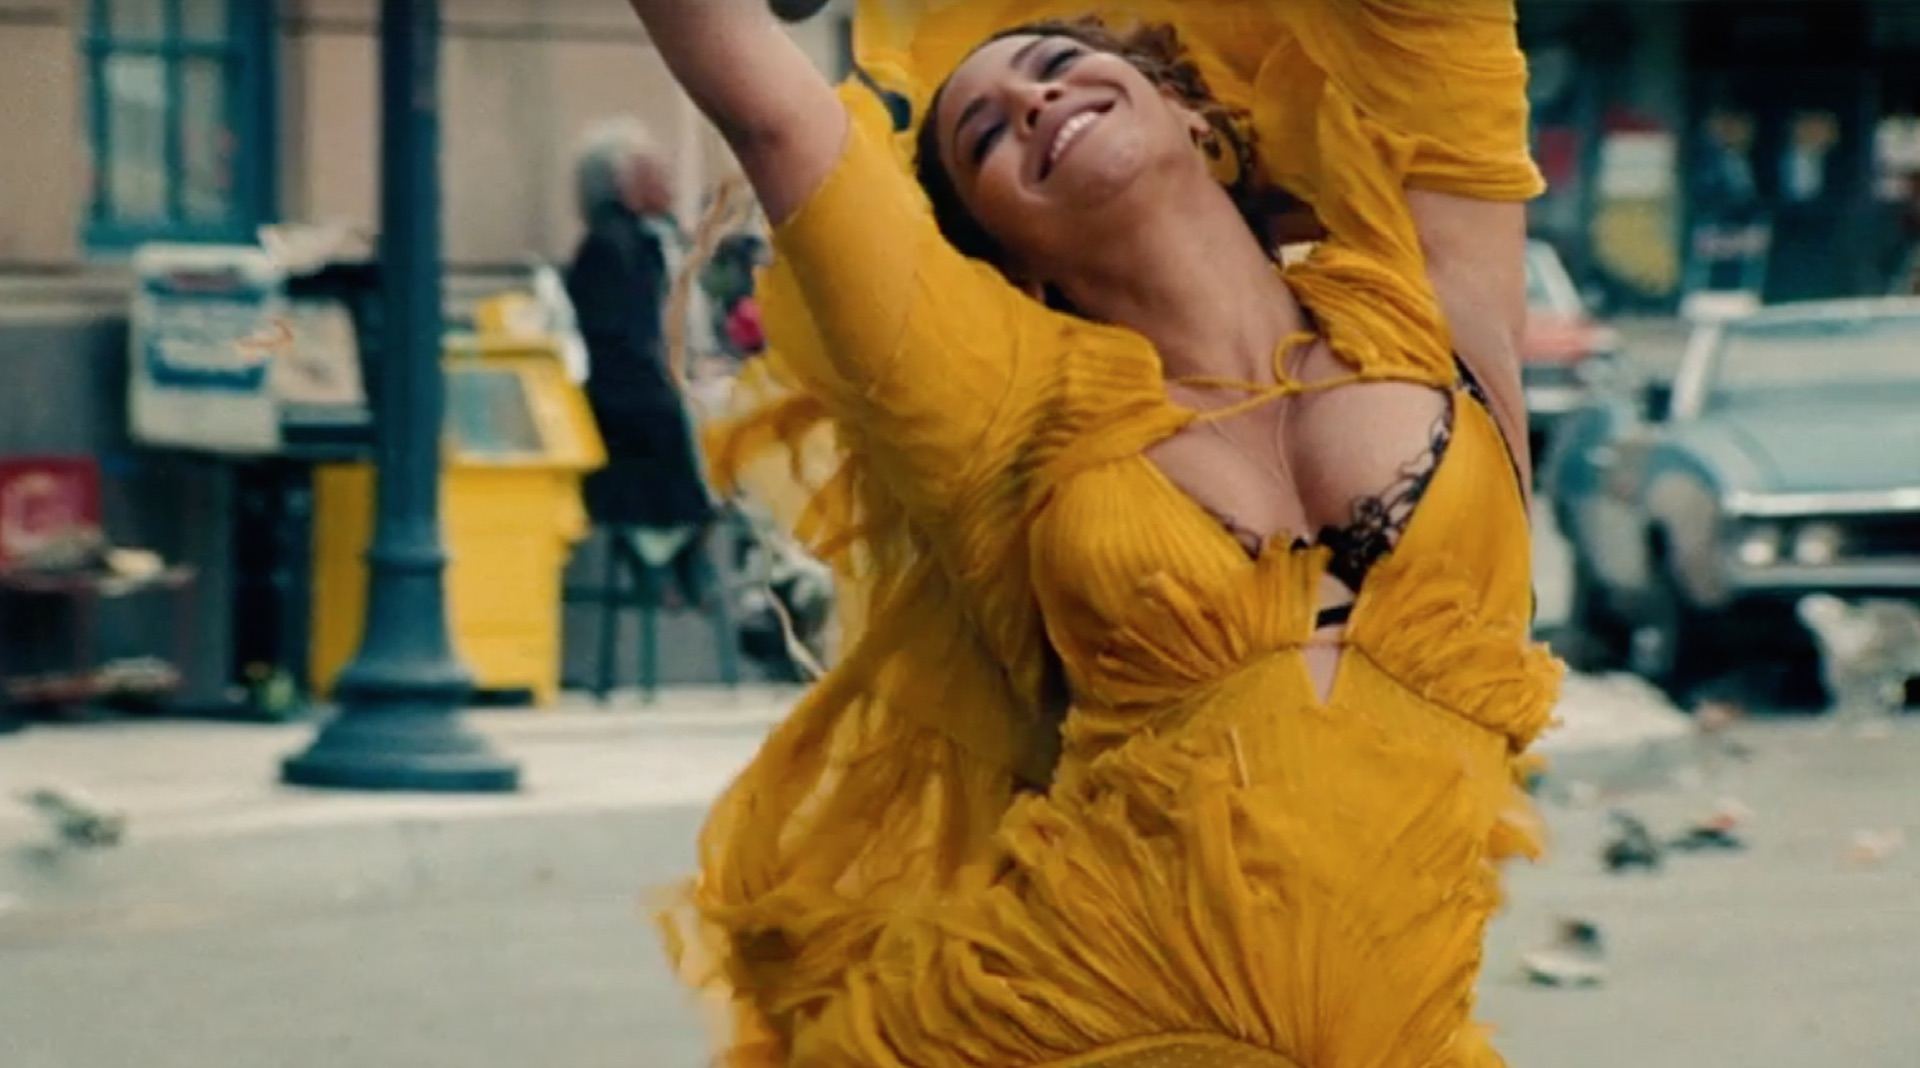 Everyone is talking about Beyoncé's new album. Here's what you need to know.